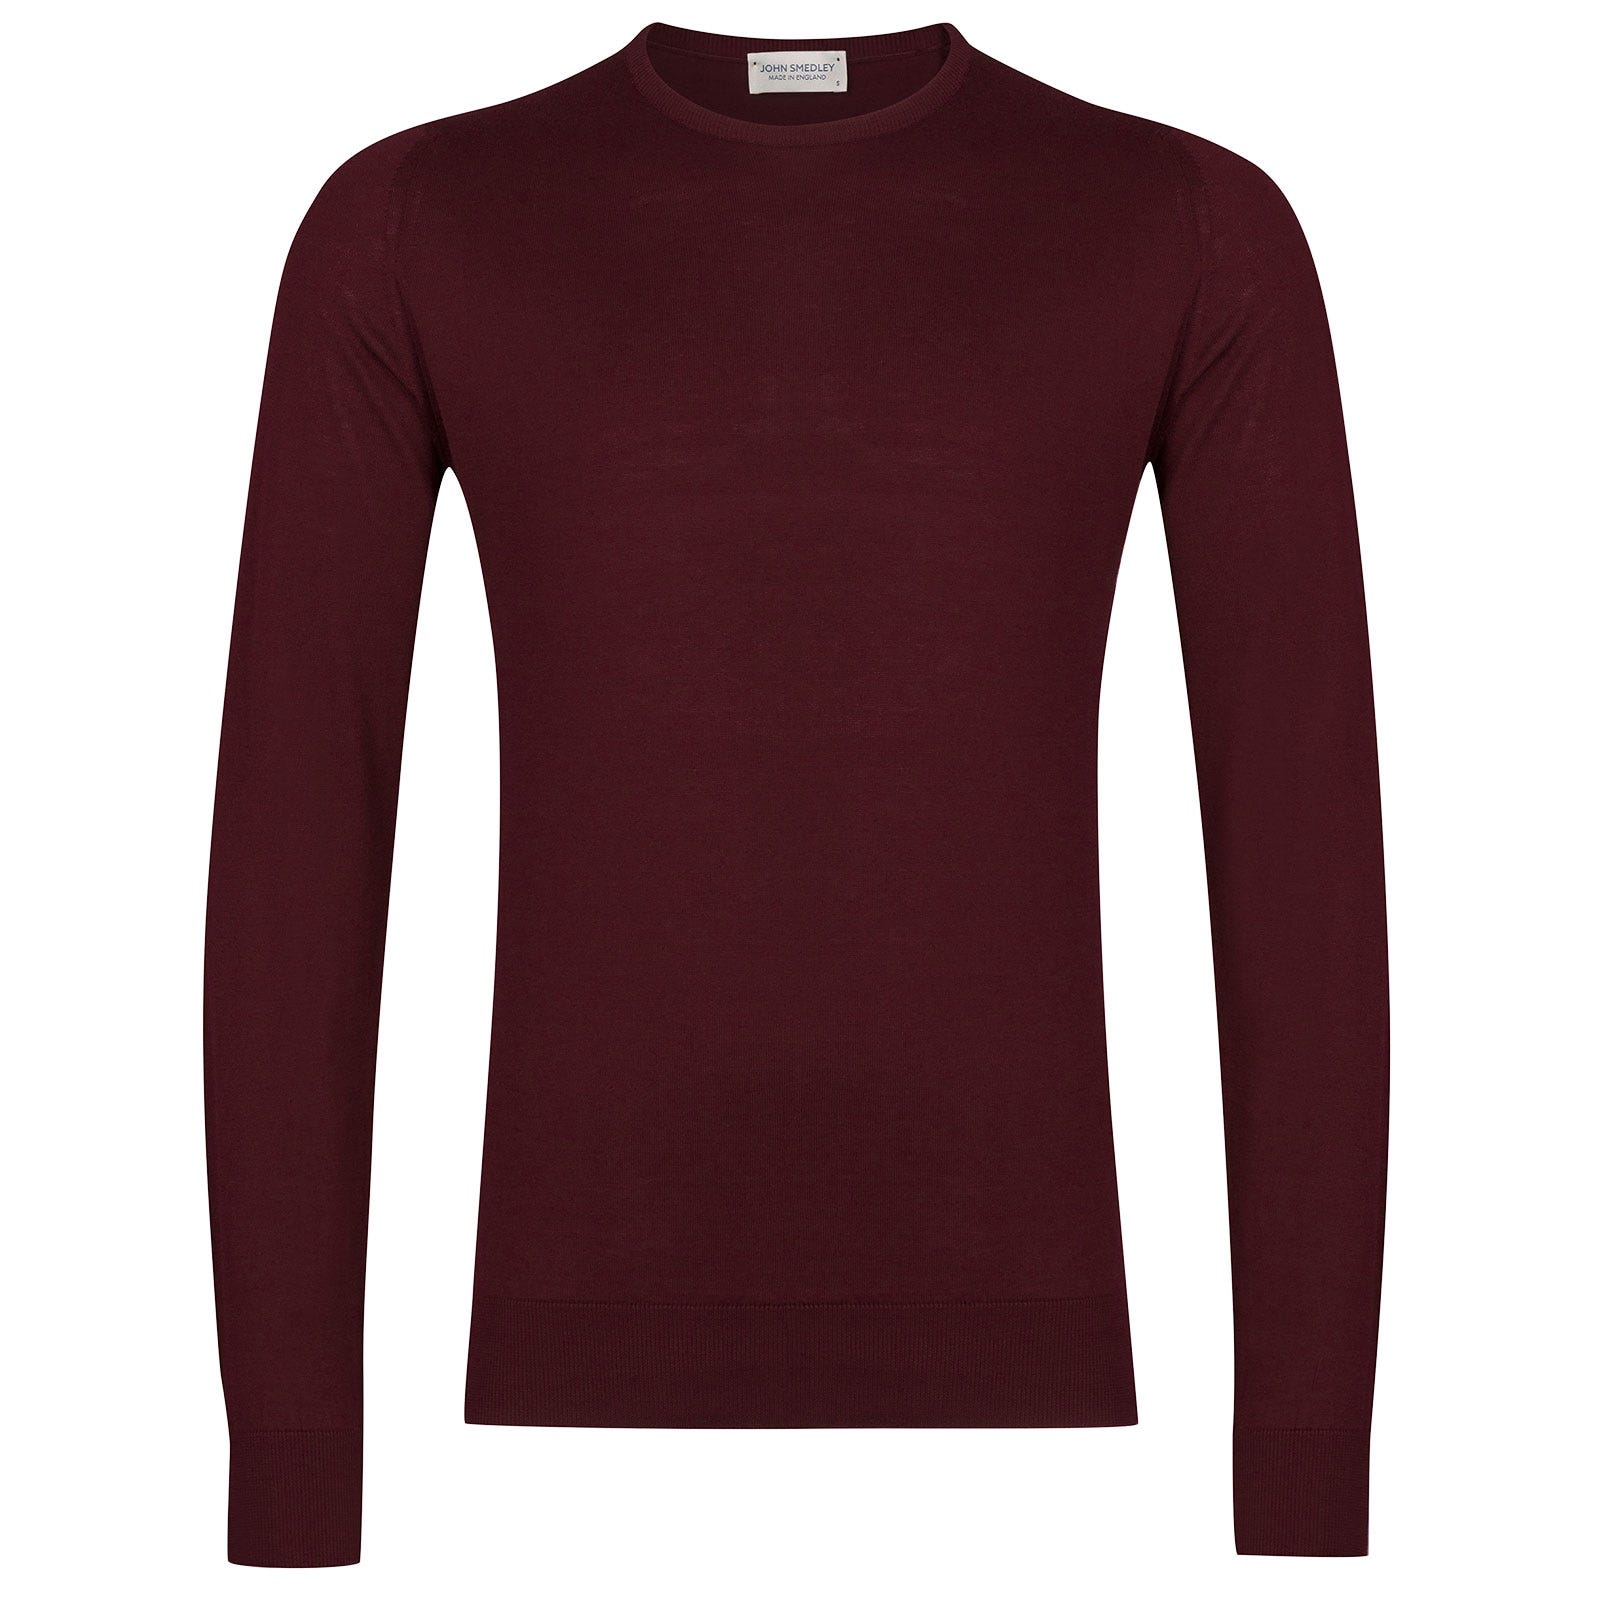 John Smedley Hatfield Sea Island Cotton Pullover in Bordeaux-XL